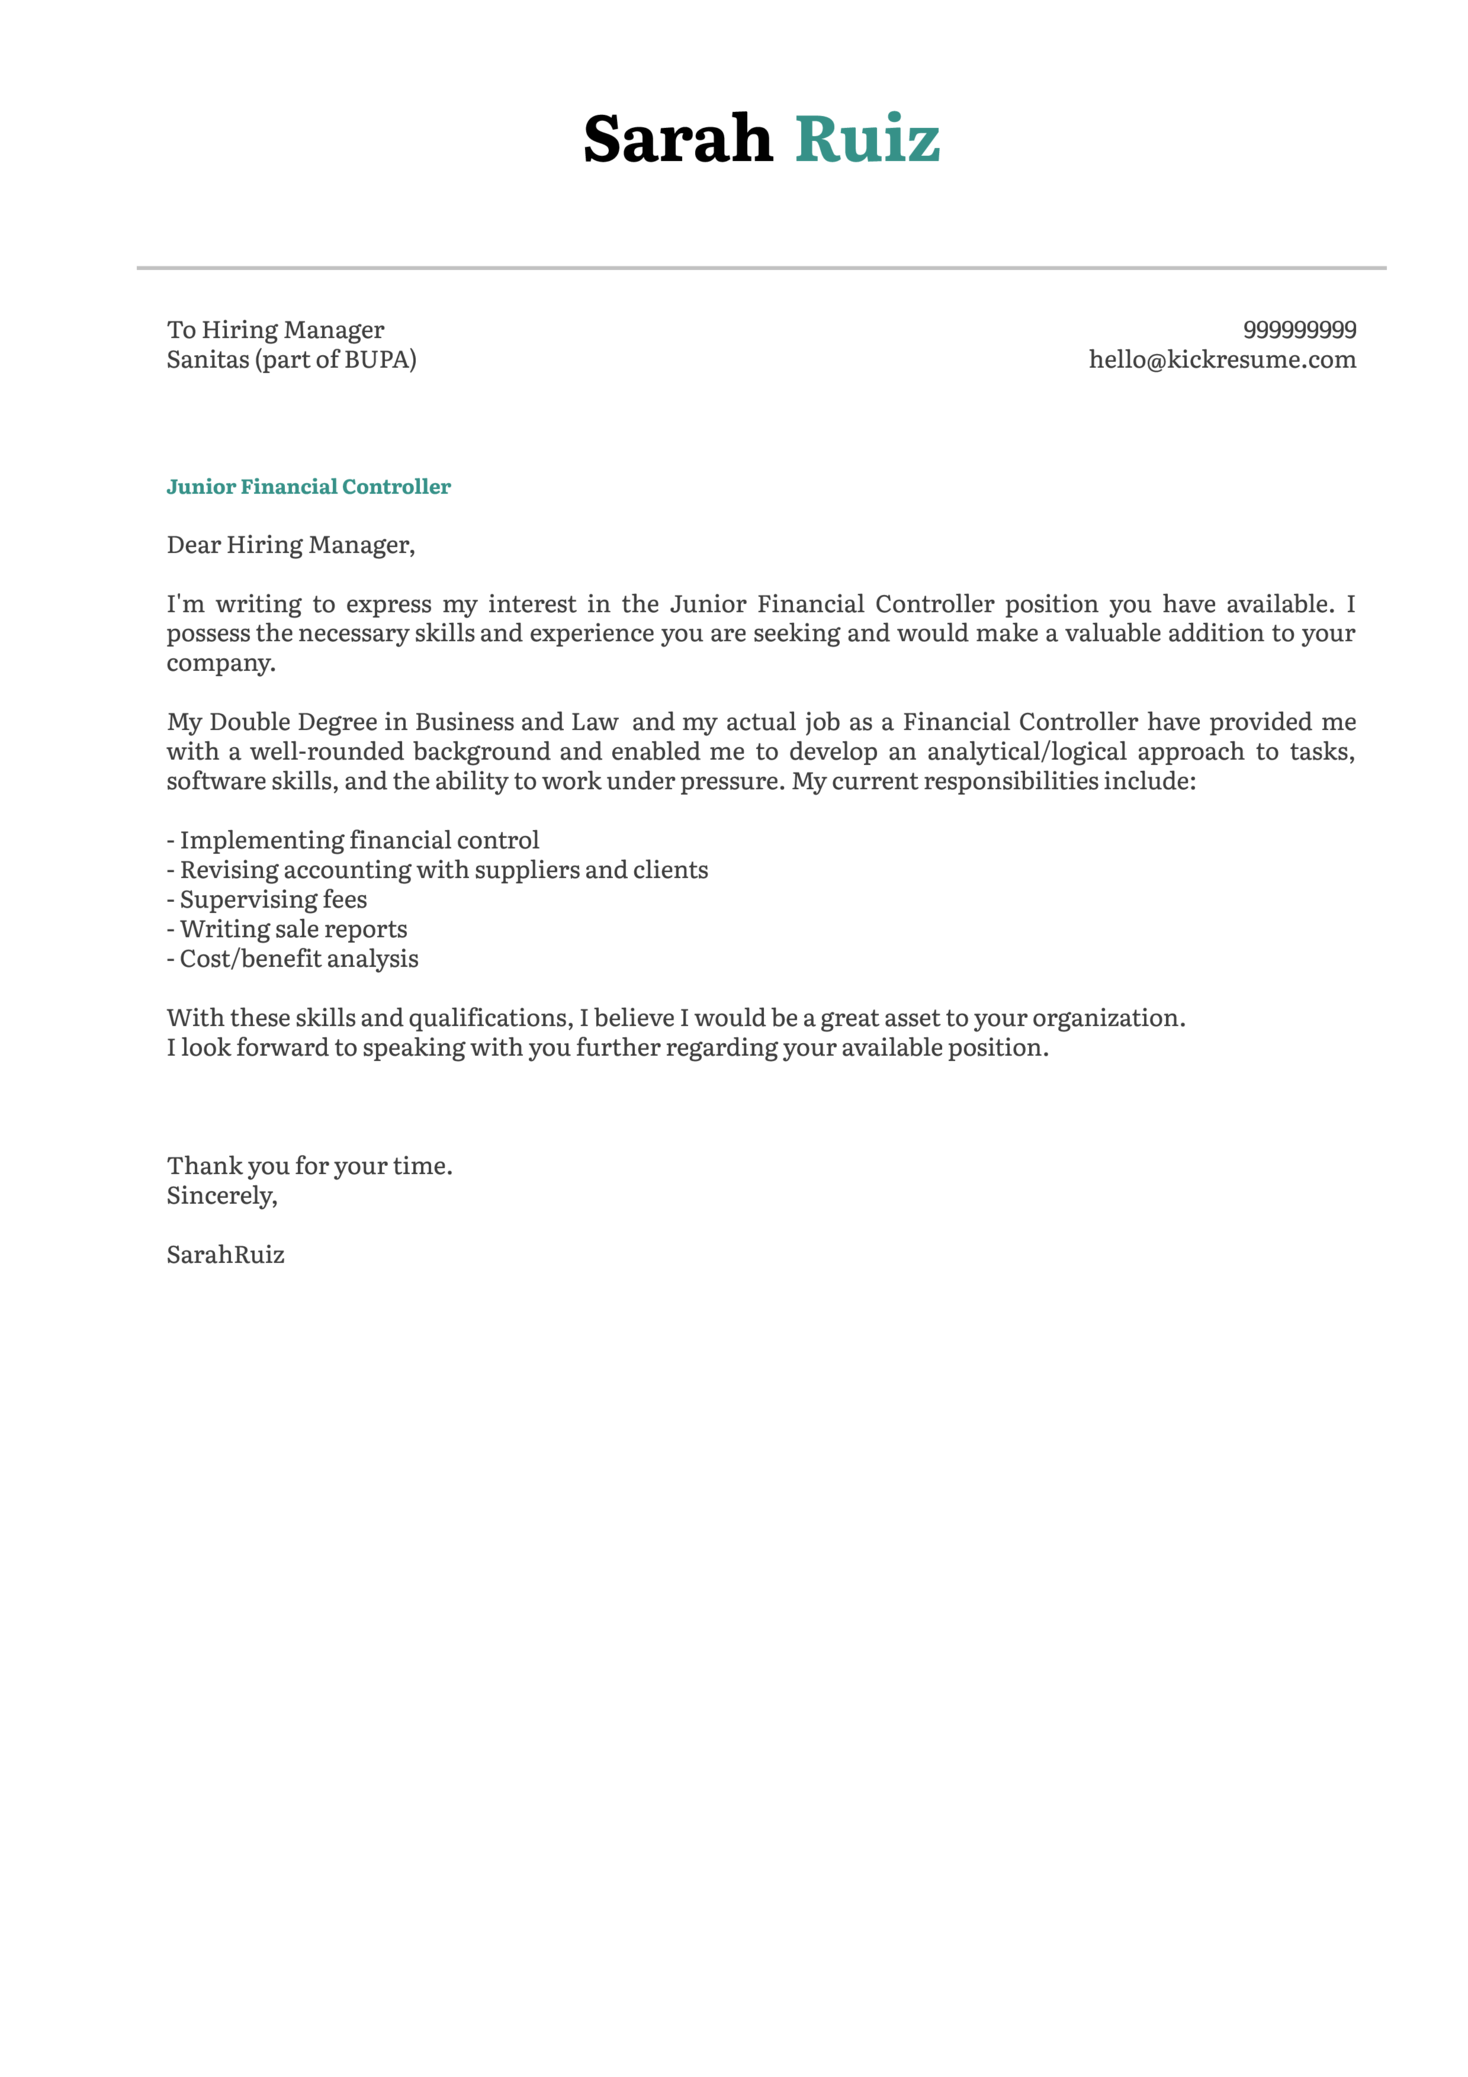 Cover Letter Examples by Real People: Junior financial controller ...